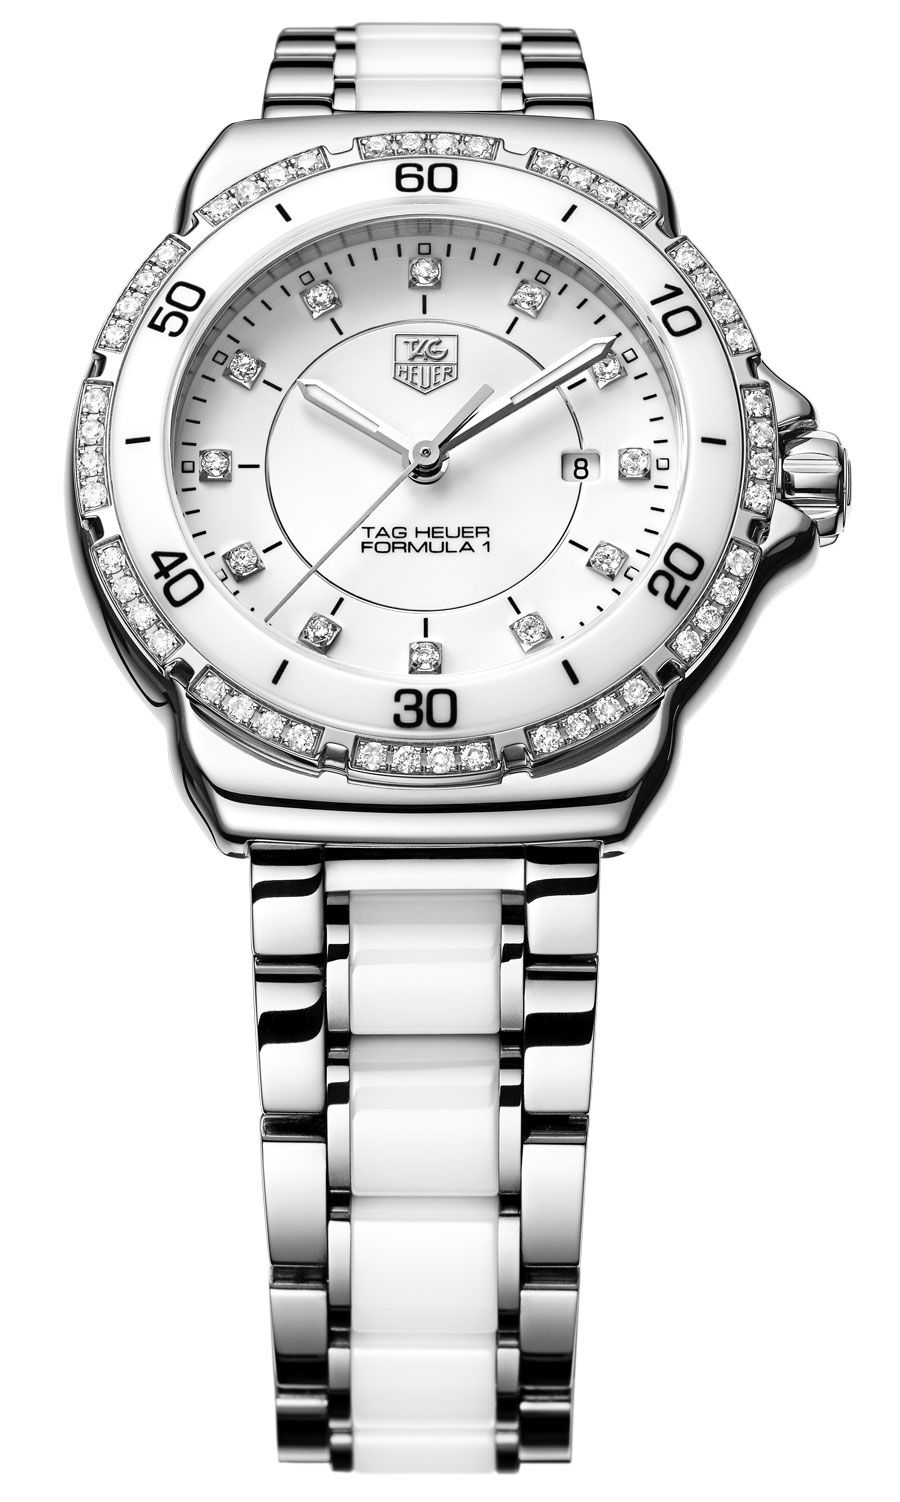 2ac34d60a31 TAG Heuer Formula 1 Lady Steel   White Ceramic Watch with Diamond Bezel    Dial - Jewelers Trade Shop